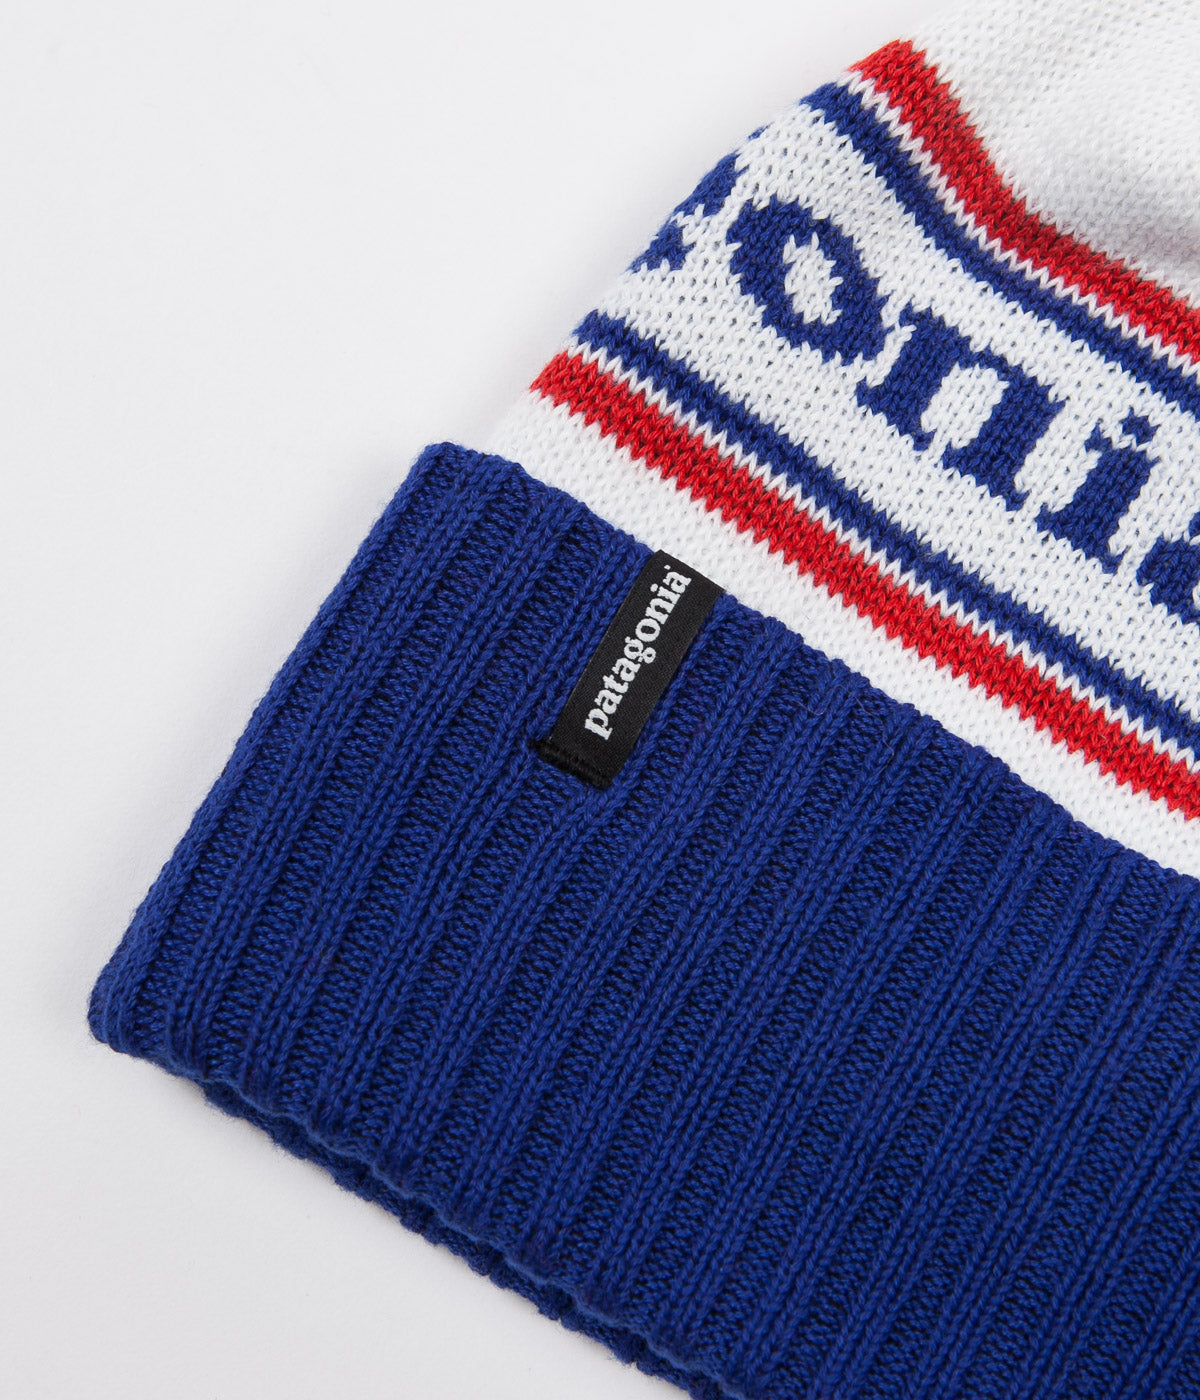 Patagonia Powder Town Beanie - Park Stripe / Viking Blue